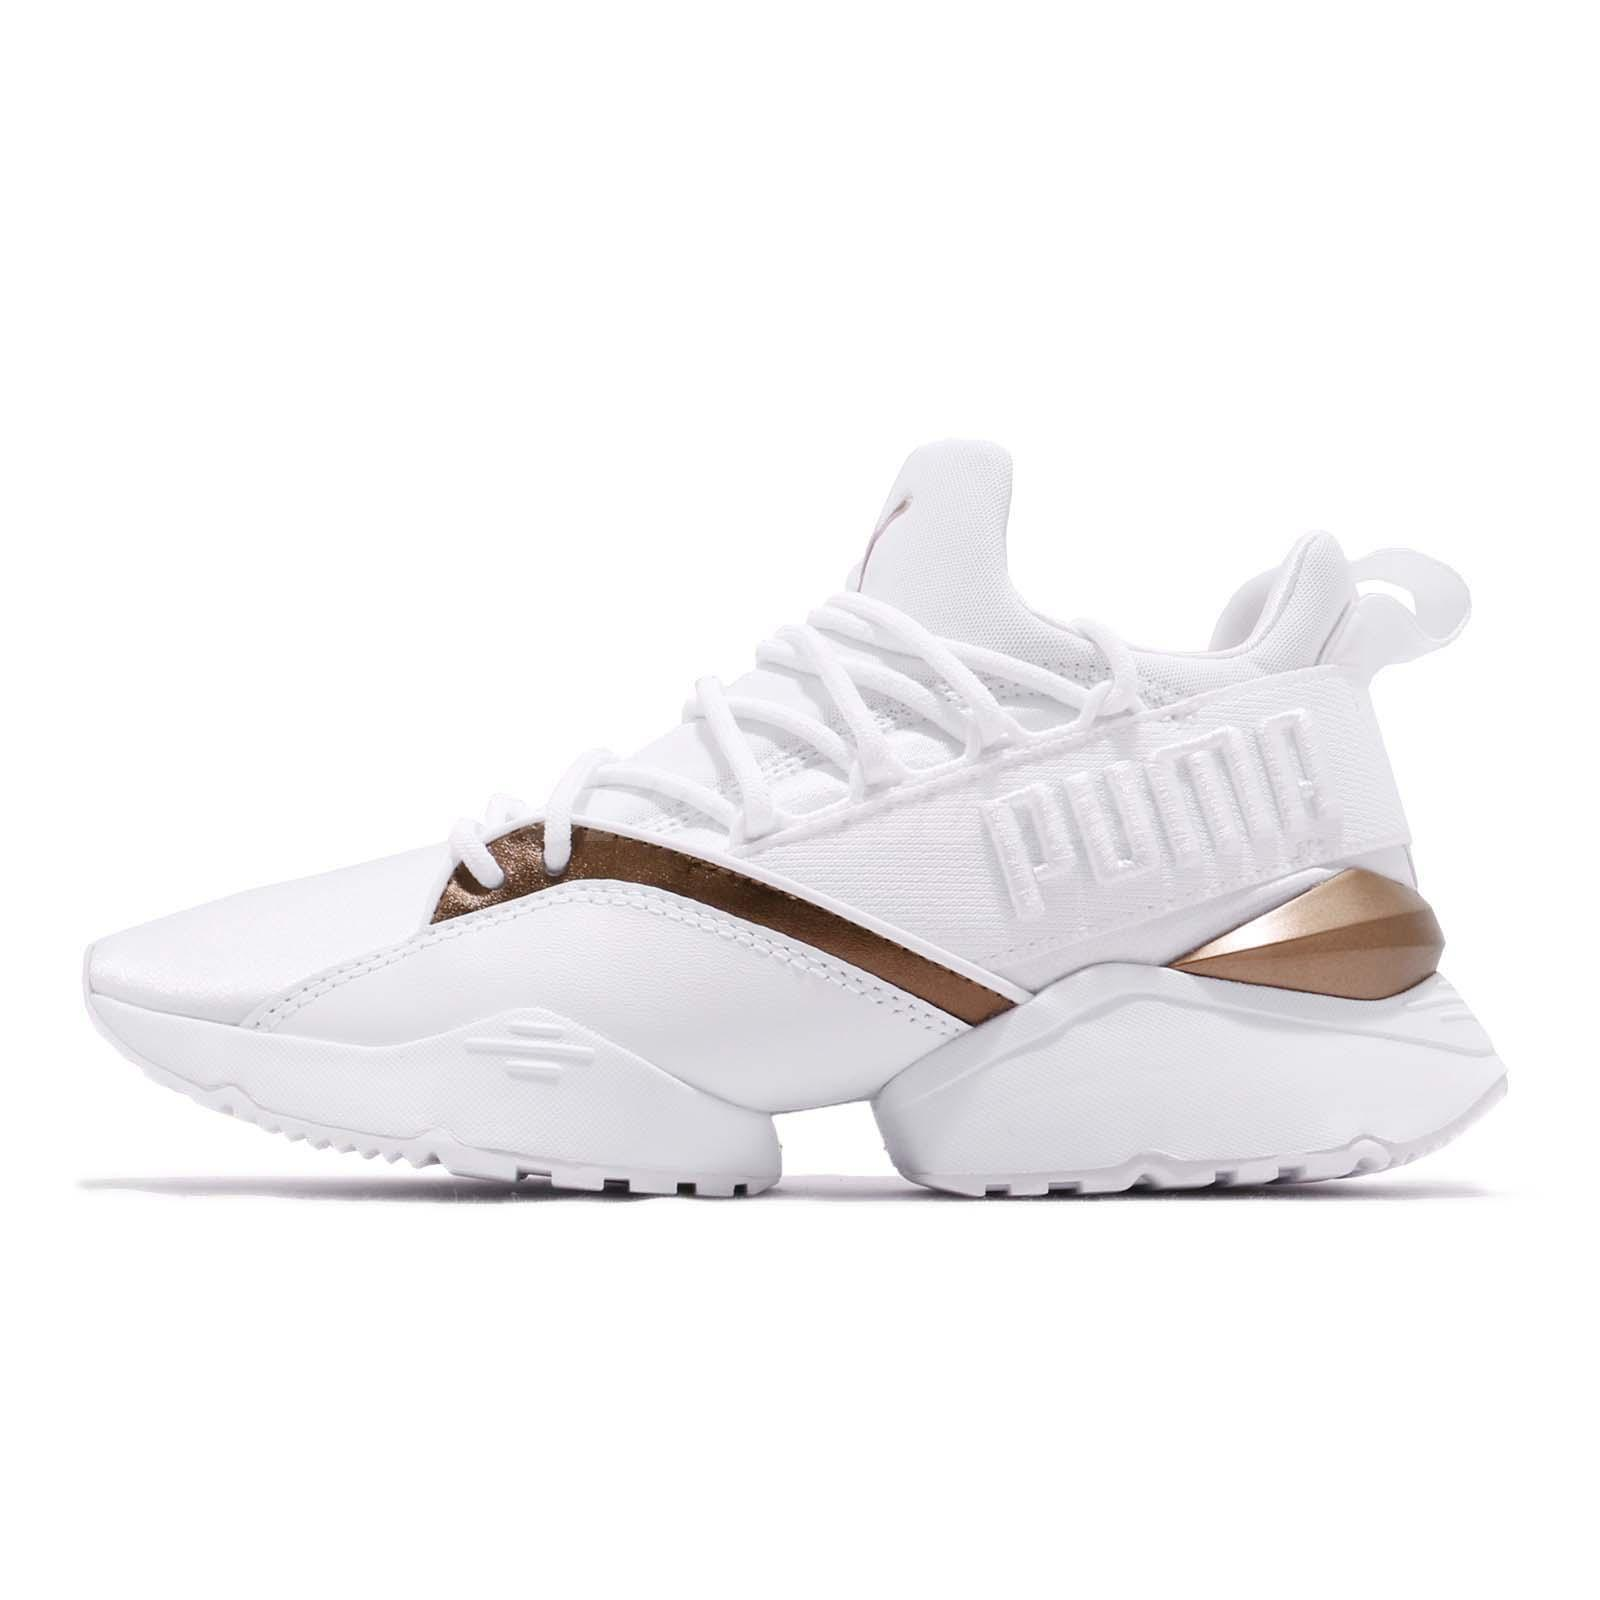 f45d3200431 Puma Muse Maia Luxe Wns White Women Running Casual Lifestyle Shoes 366766-02